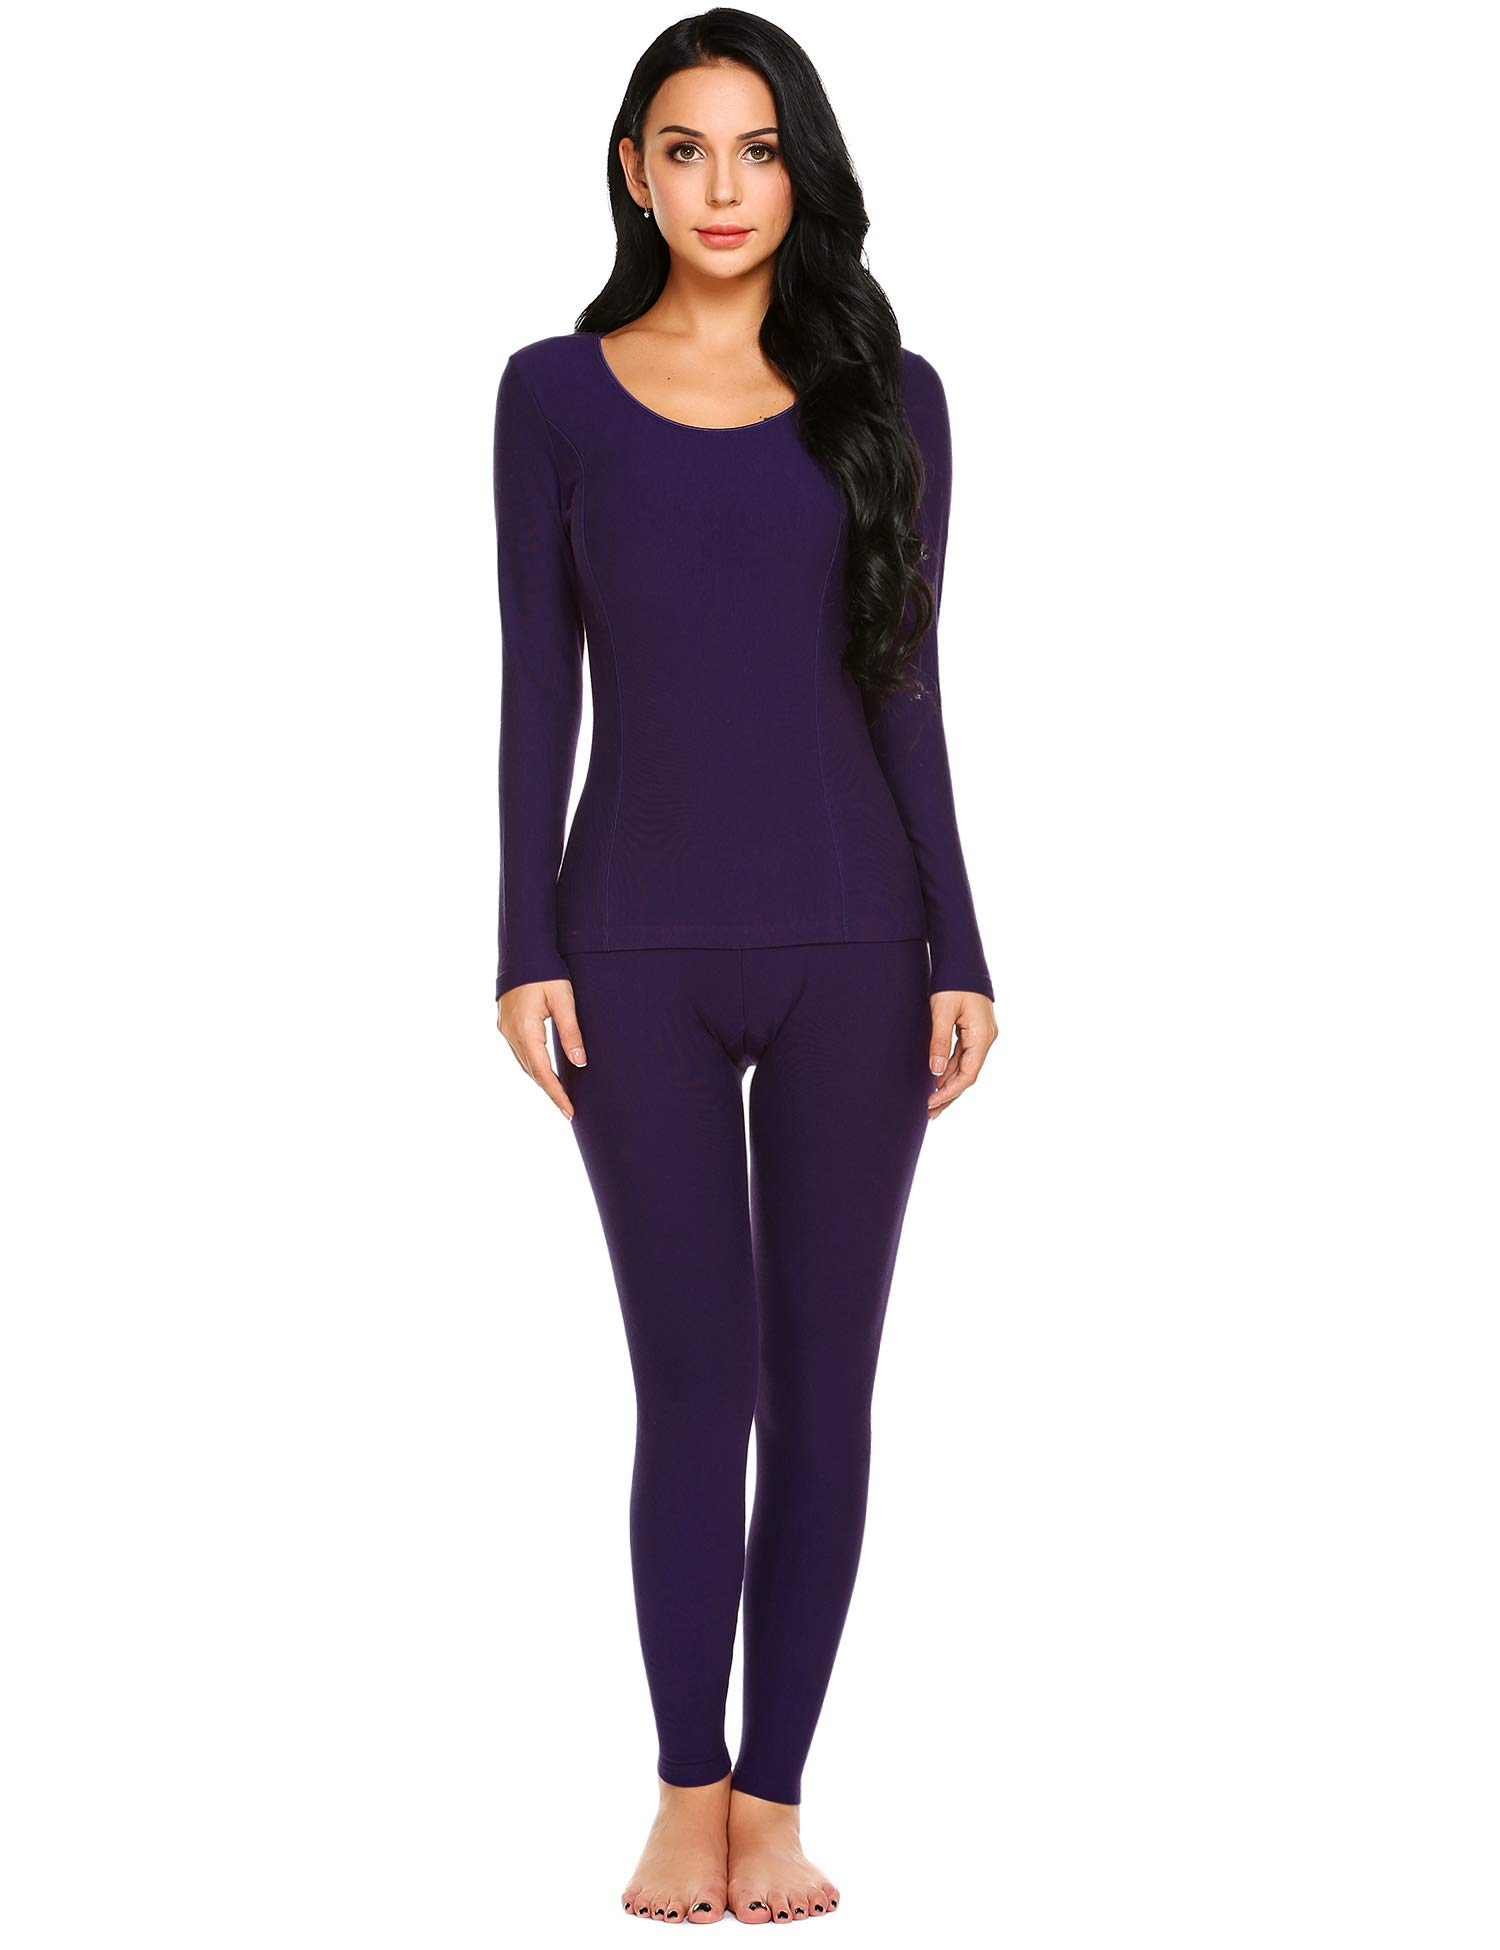 Ekouaer Women's Long Thermal Underwear Fleece Lined Winter Base Layering Set,Purple,Medium by Ekouaer